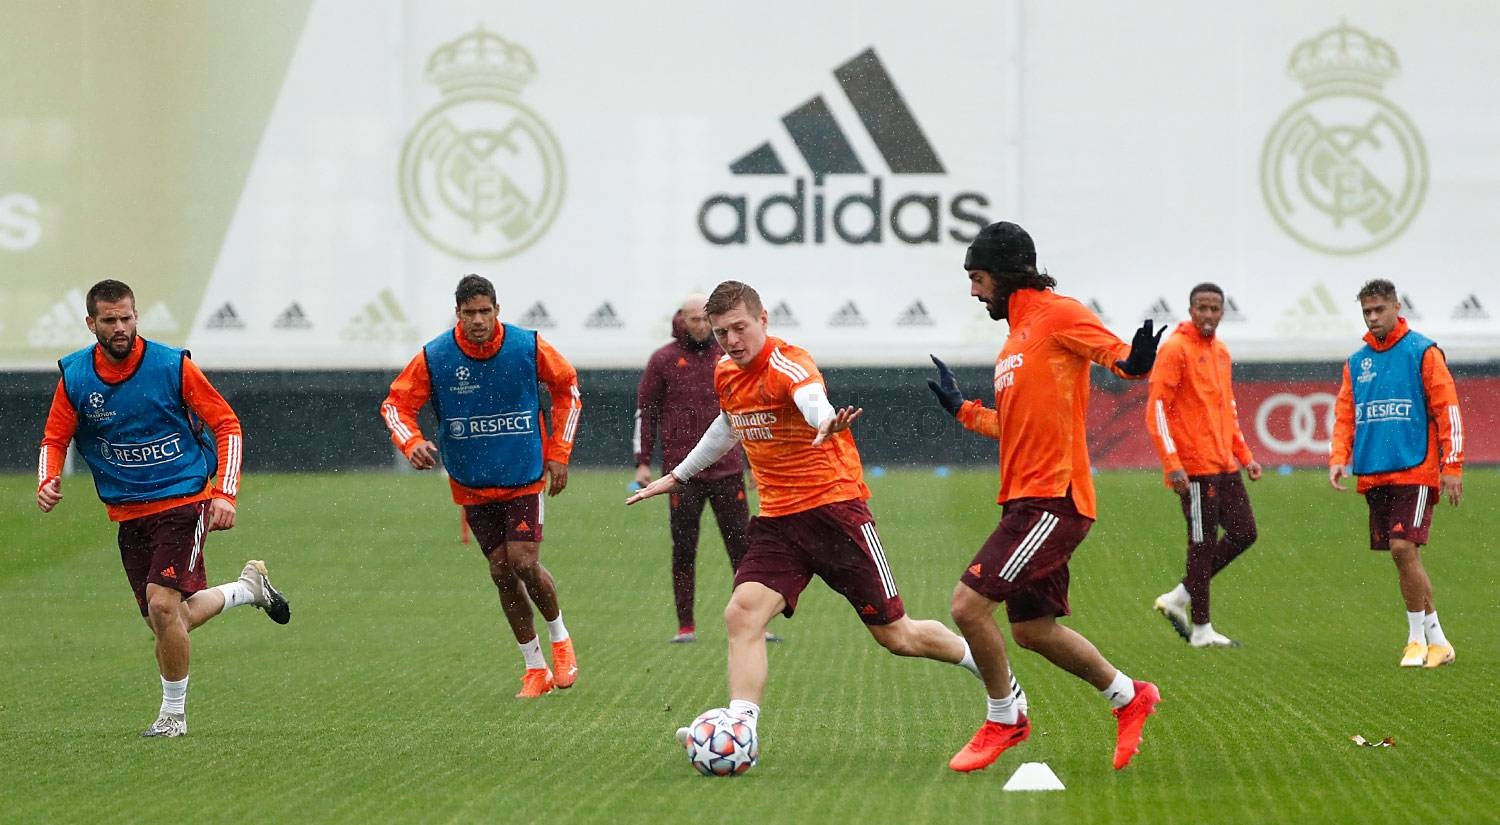 Real Madrid - Entrenamiento del Real Madrid  - 20-10-2020